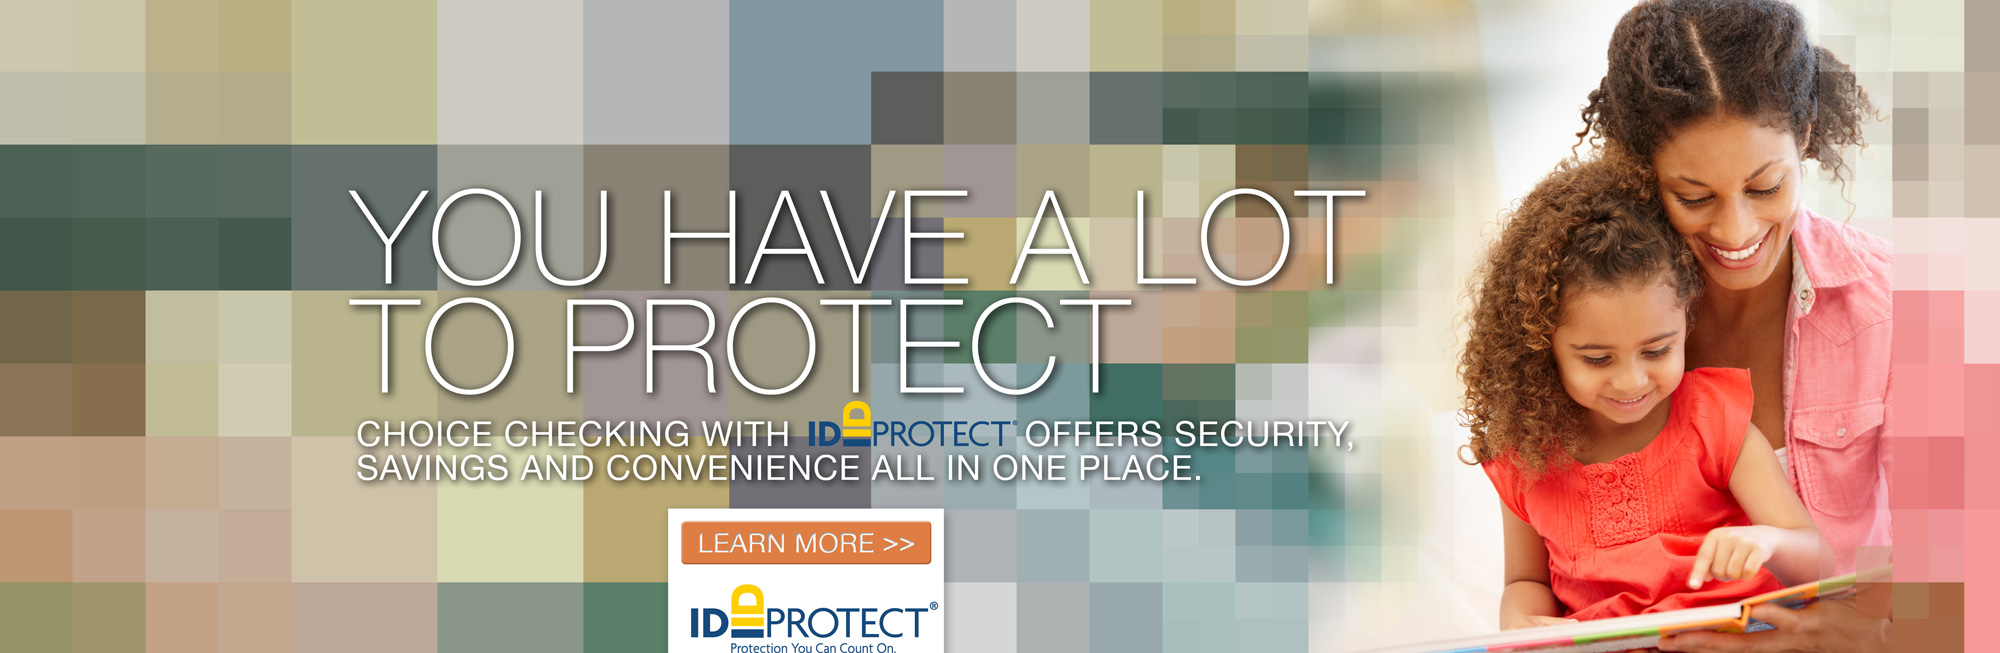 You have a lot to protect. Choice Checking with ID Protect® offers security, savings and convenience all in one place. Learn more!